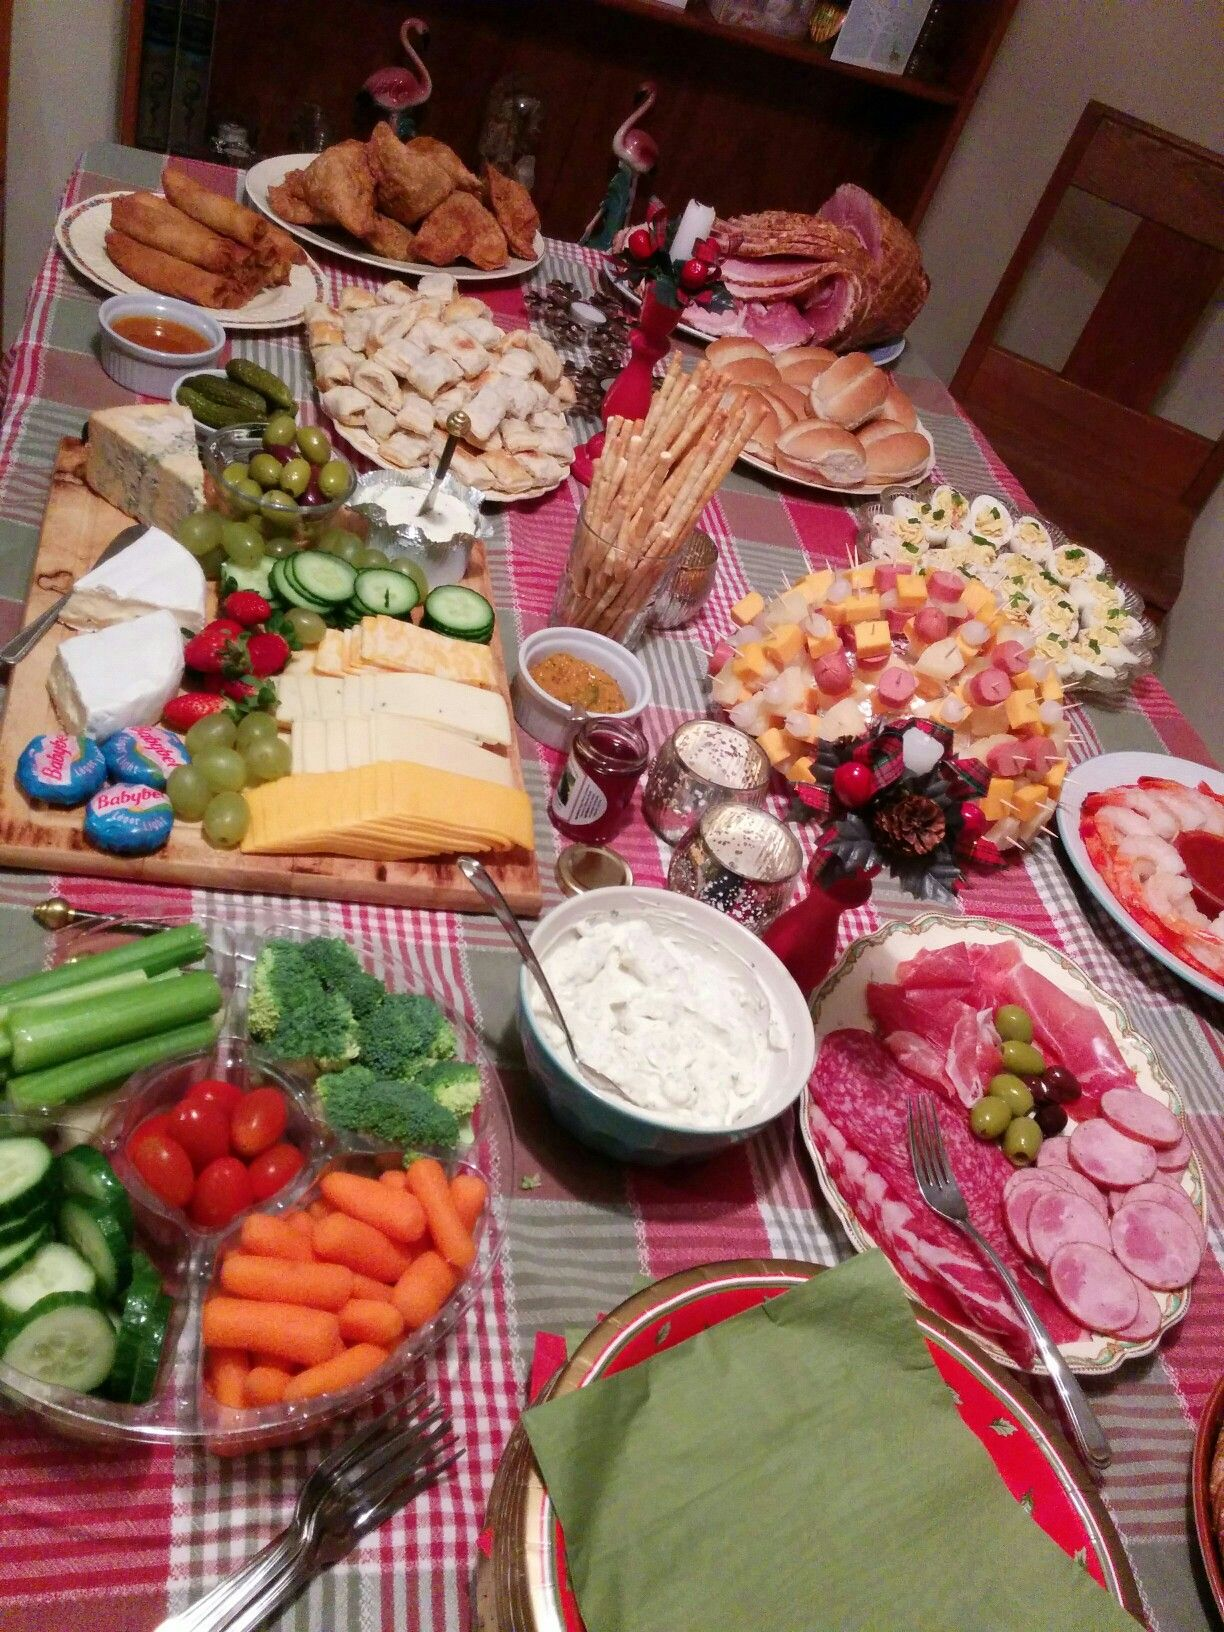 Christmas Eve Menu Ideas For Buffet.Boxing Day Buffet Table Settings In 2019 Boxing Day Food